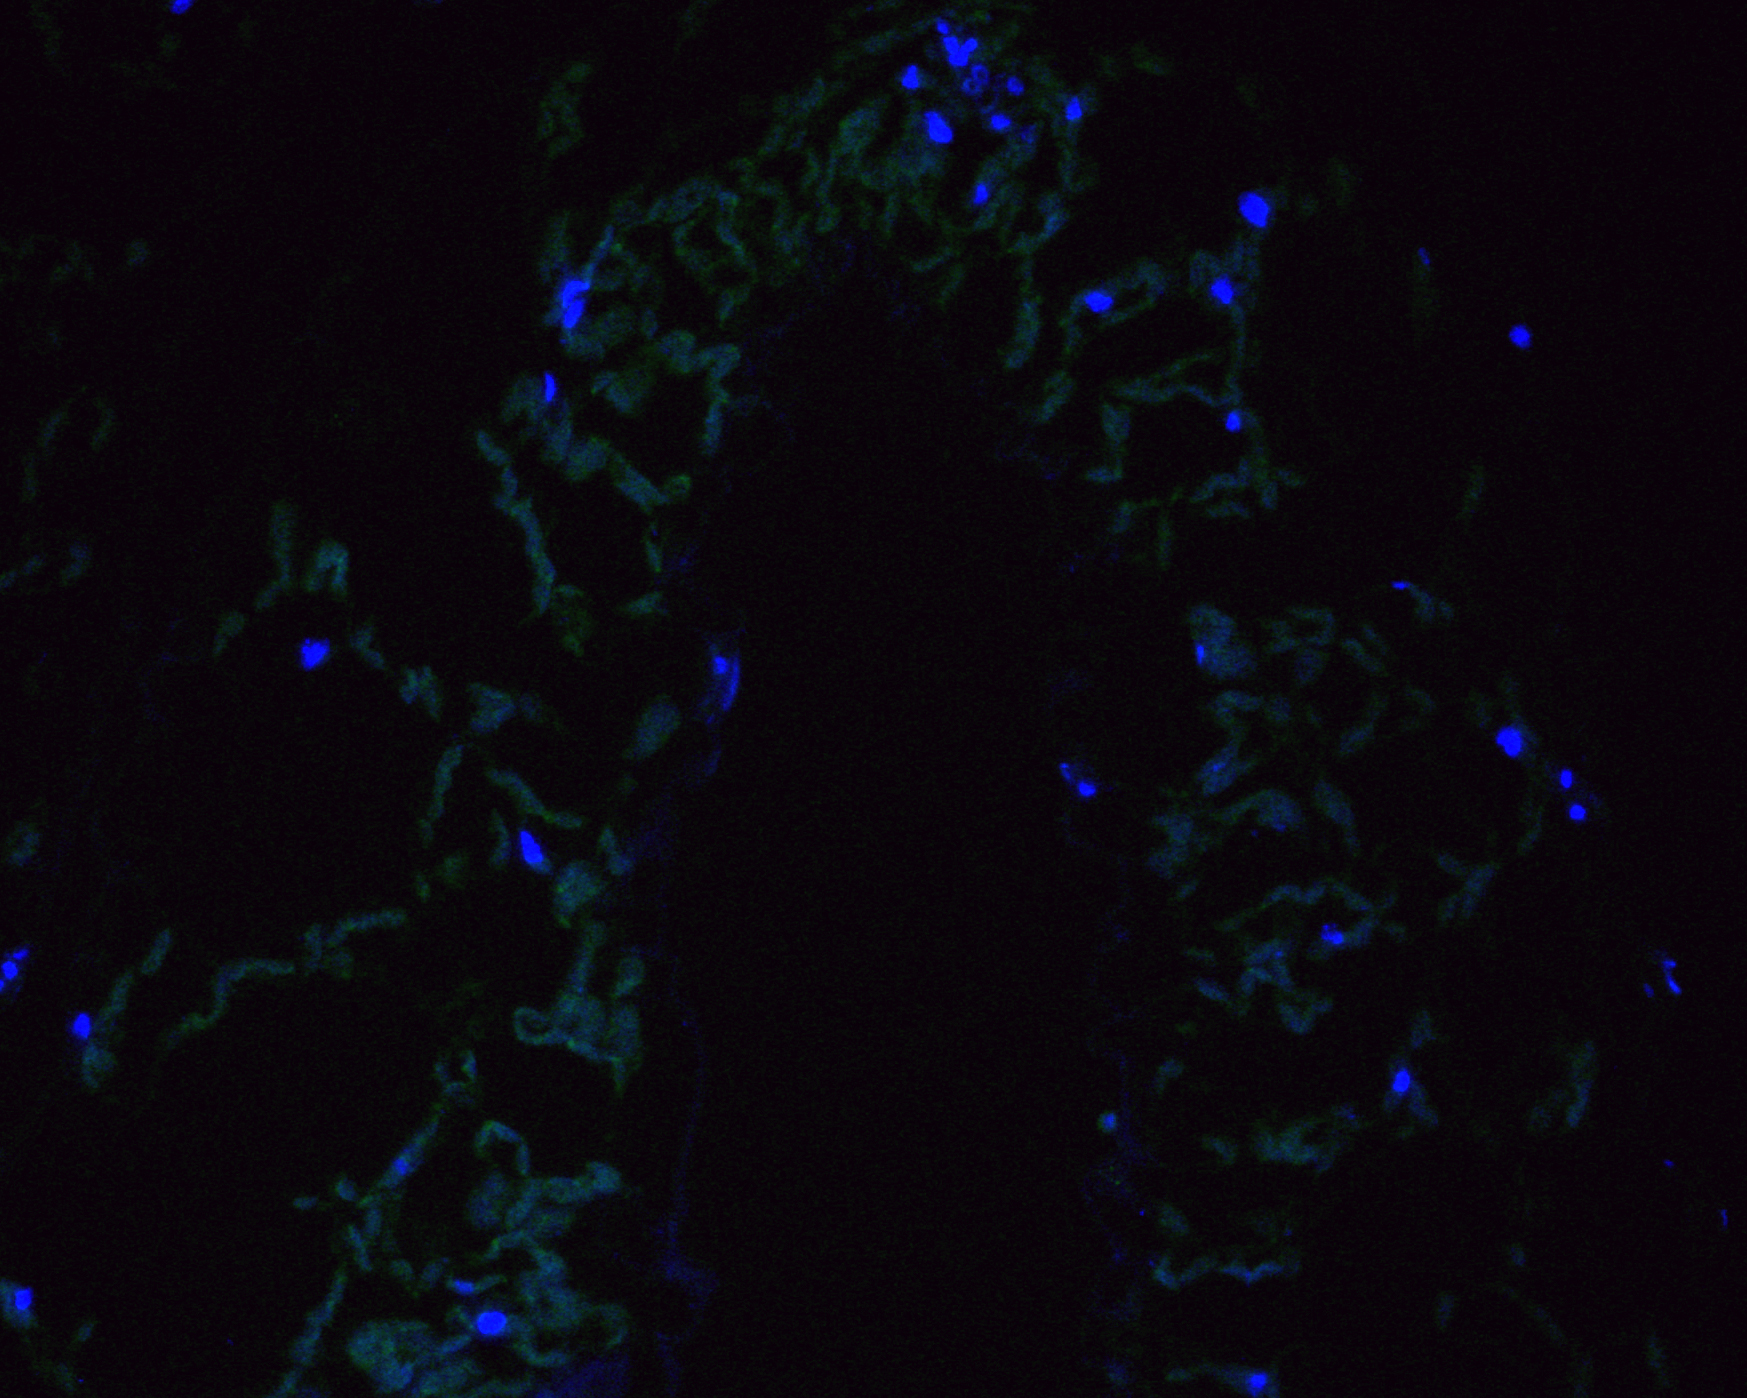 Immunofluorescence staining of paraffin- embedded rice tissue using anti-D14 rabbit polyclonal antibody.The section was pre-treated using heat mediated antigen retrieval with Tris-EDTA buffer (pH 9.0) for 20 minutes.(sodium citrate buffer (pH 6.0) for 20 mins.) The tissues were blocked in 10% negative goat serum for 1 hour at room temperature, washed with PBS, and then probed with the antibody () at 1/100 dilution for 10 hours at 4℃ and detected using Alexa Fluor™ 488 conjugate-Goat anti-Rabbit IgG (H+L) Secondary Antibody at a dilution of 1:500 for 1 hour at room temperature.